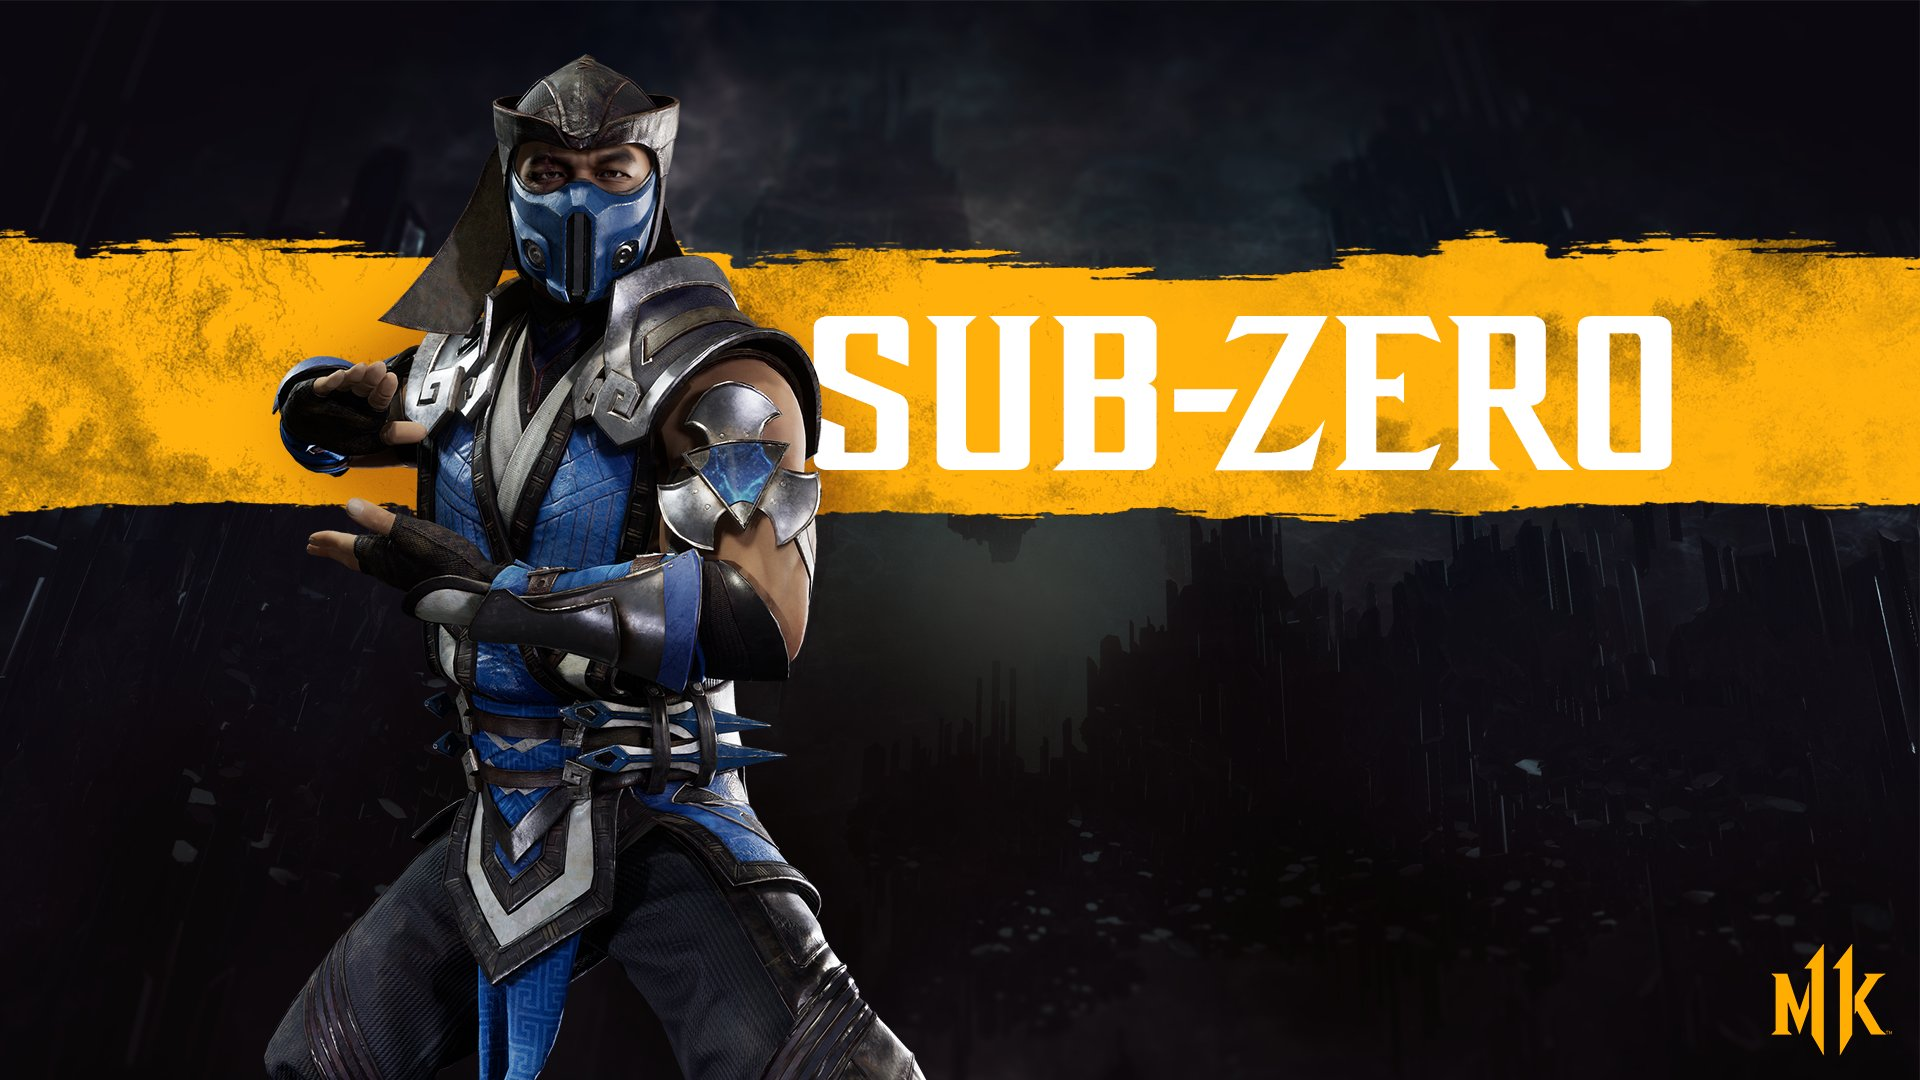 Mortal Kombat 11 wallpaper - Sub-Zero